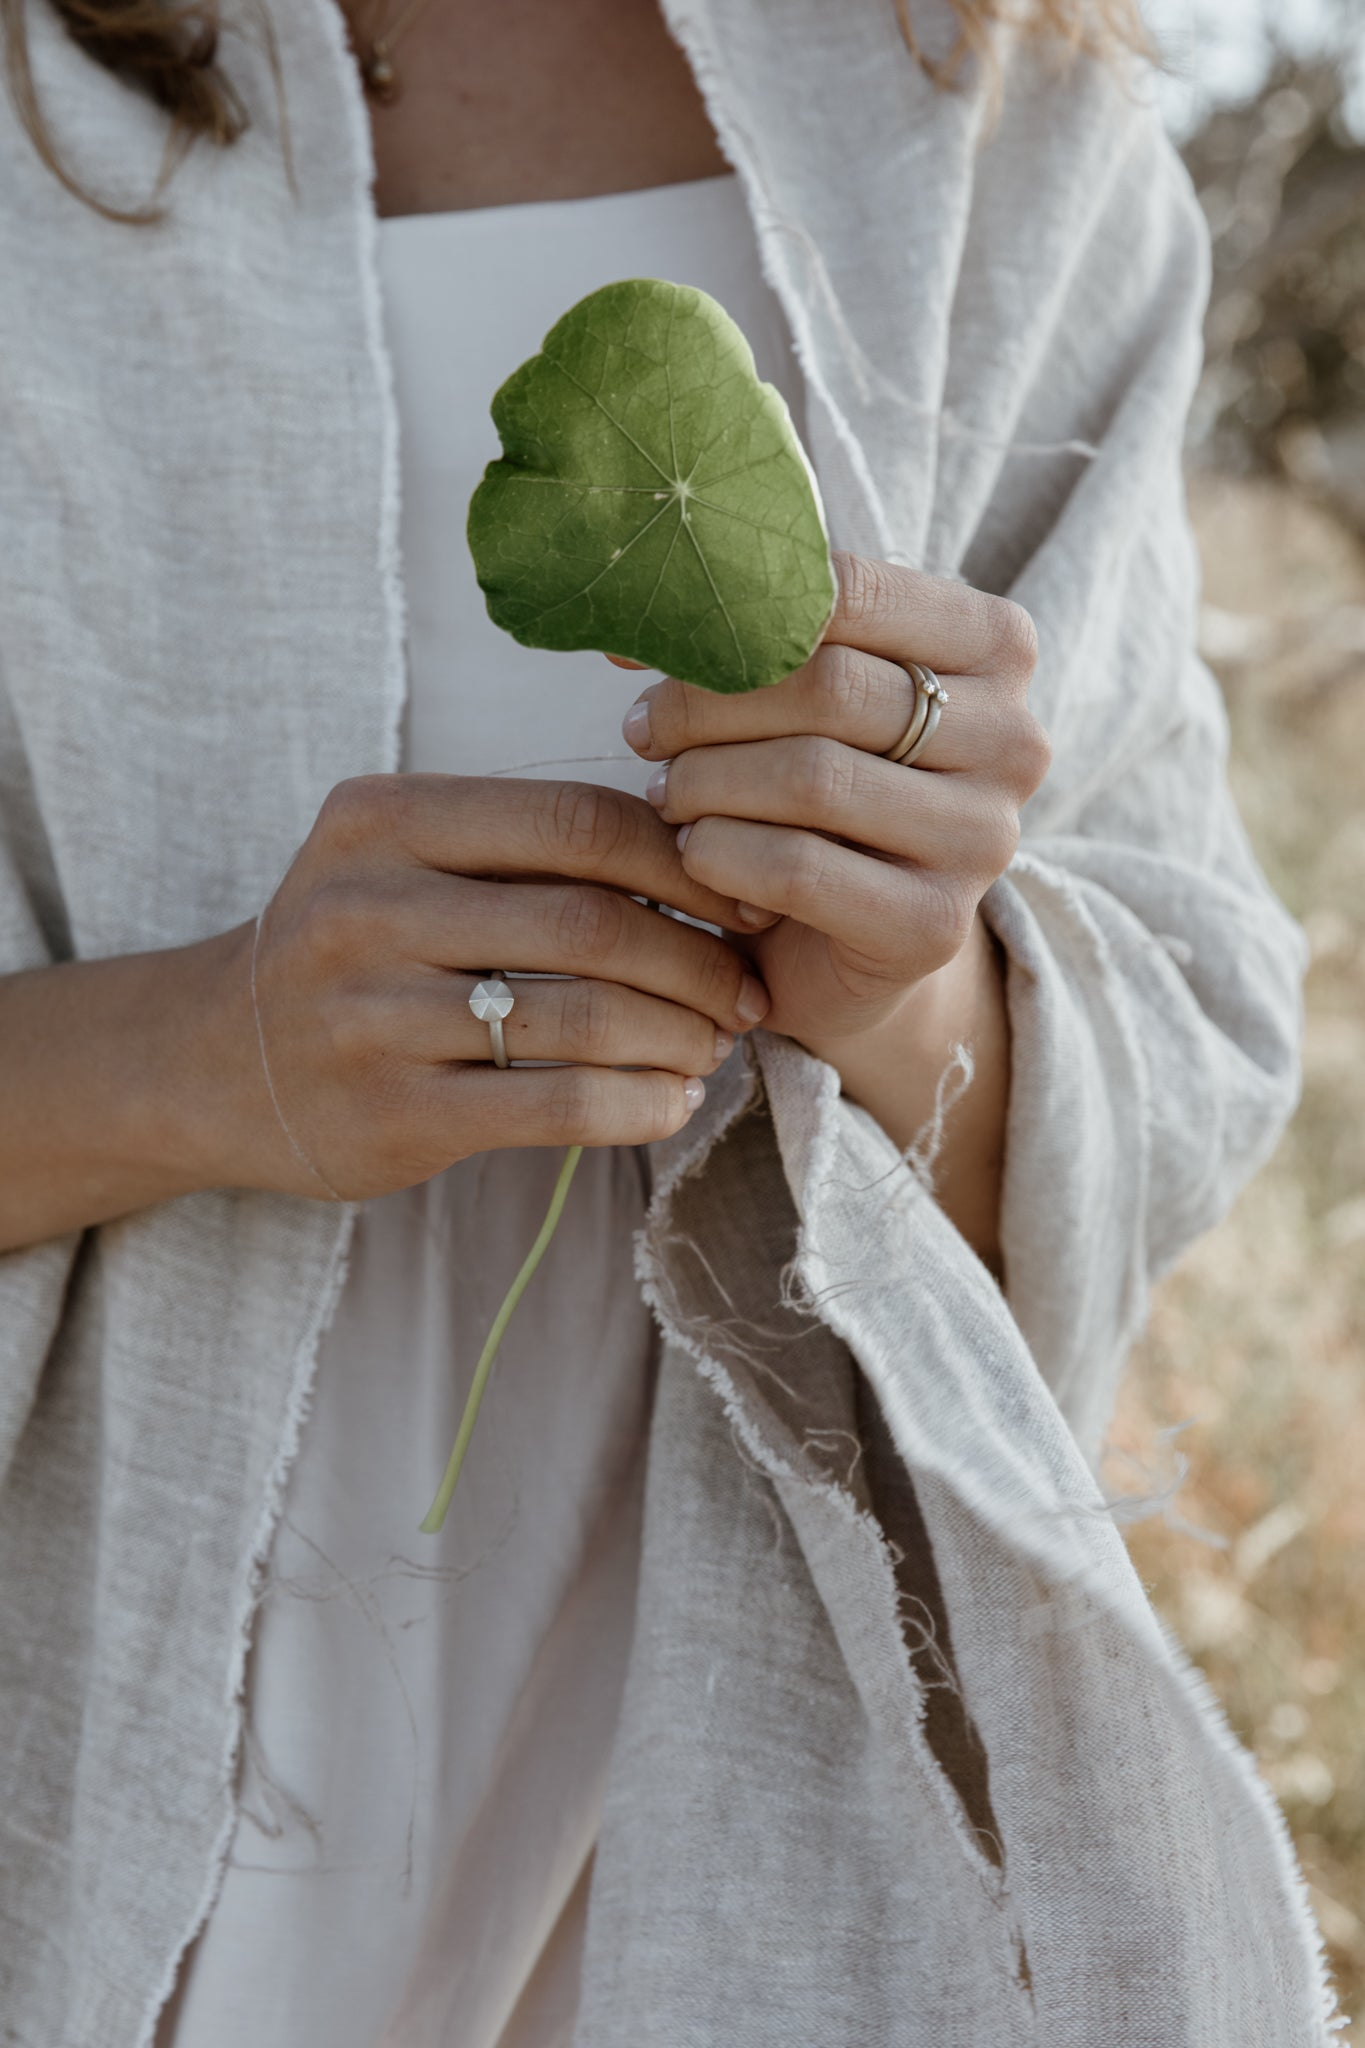 Ethical, recycled silver and gold rings worn with natural linen slowfashion dress and shawl